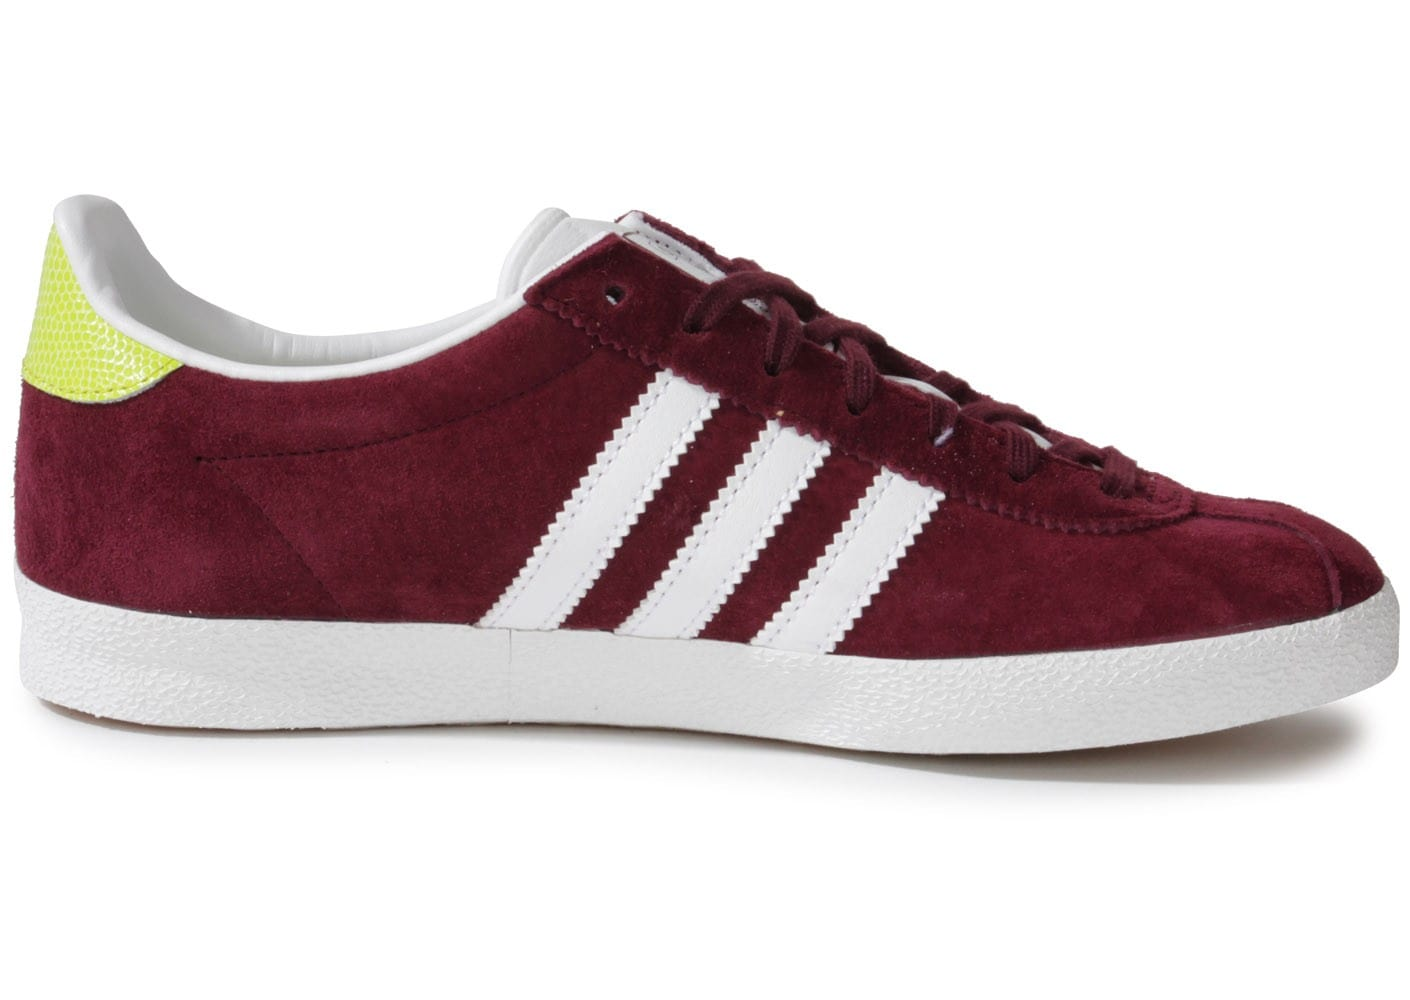 adidas - gazelle - baskets - bordeaux